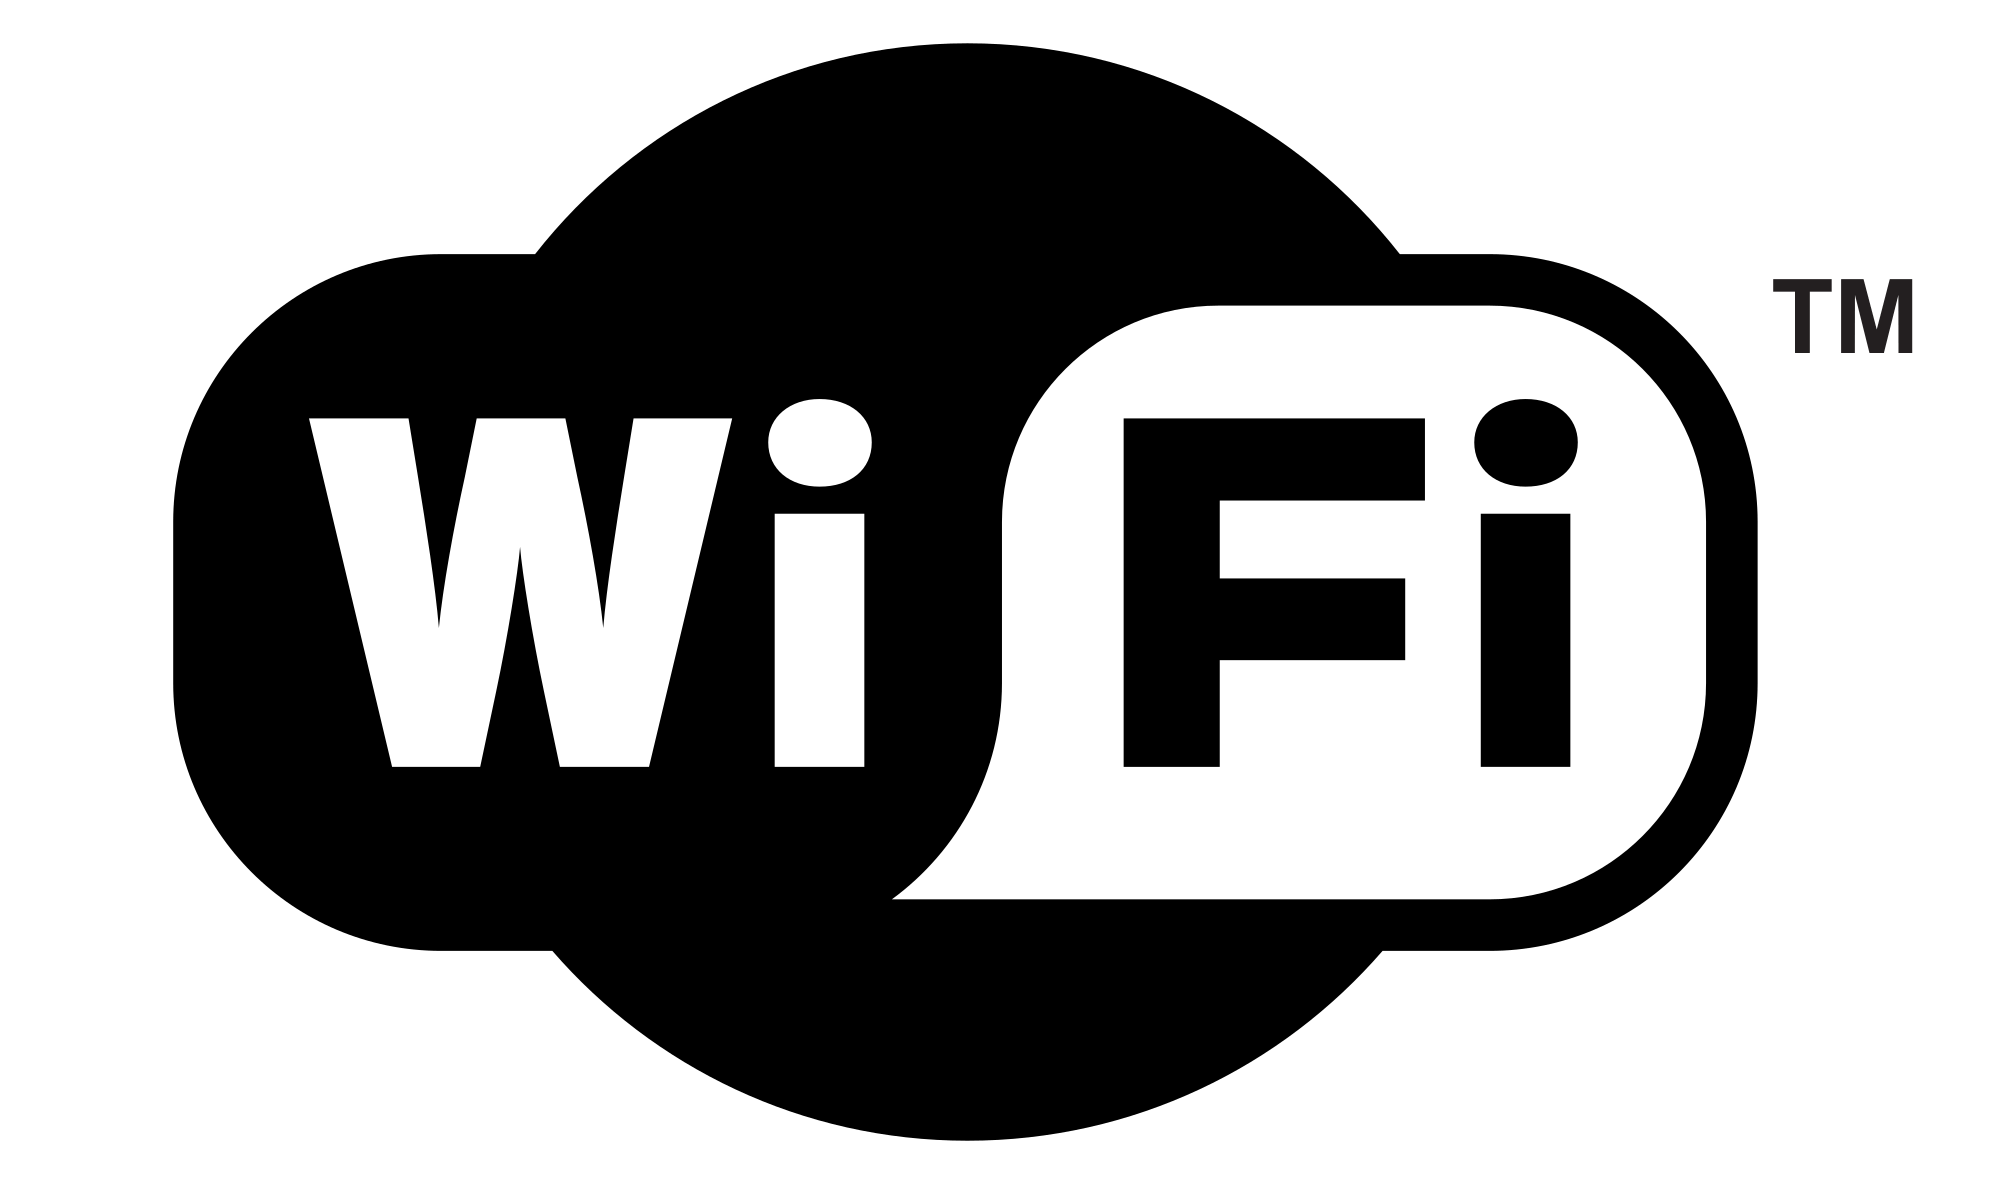 WiFi Logo Black and White transparent PNG.